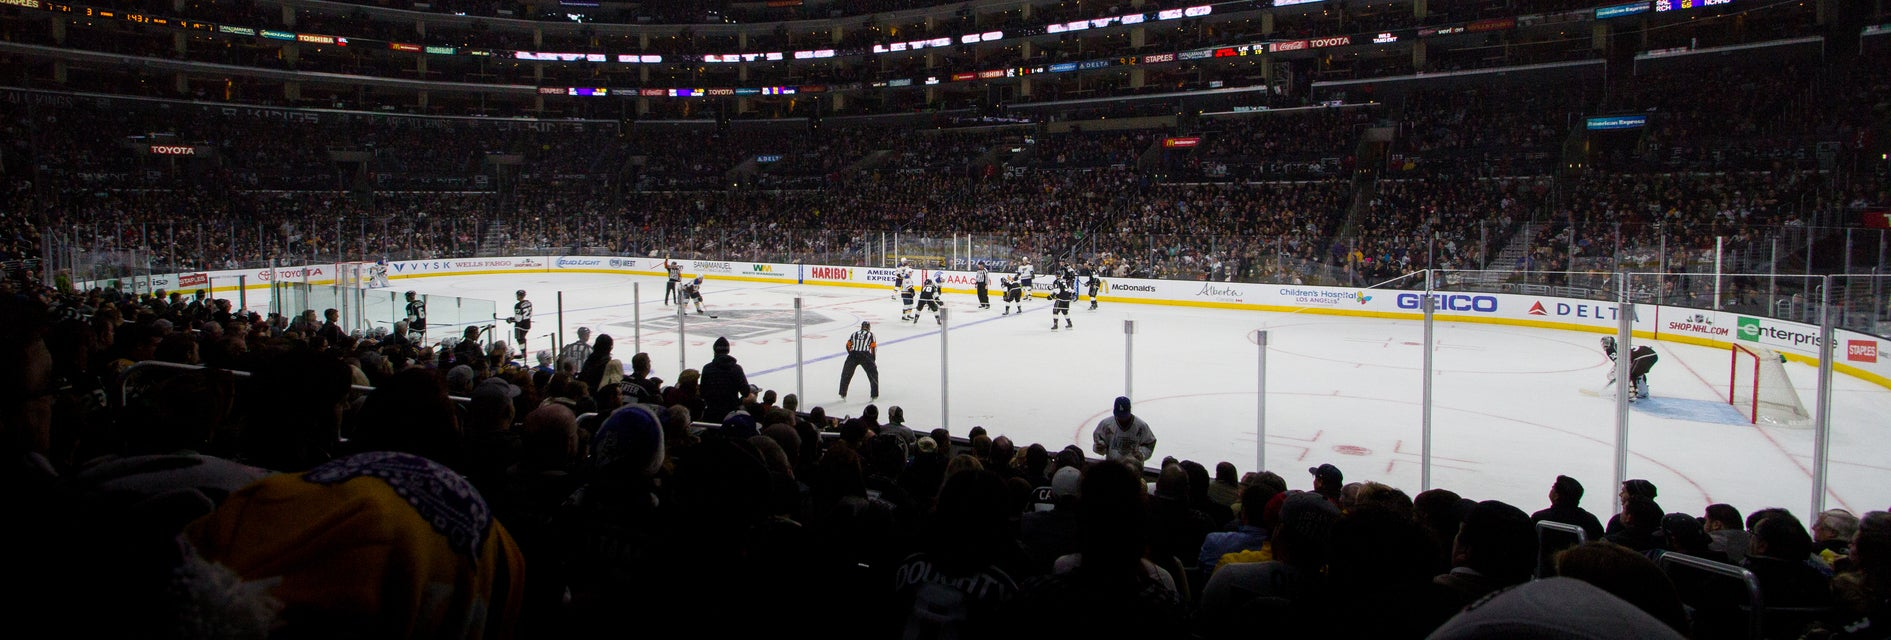 Seat view from Lower Center